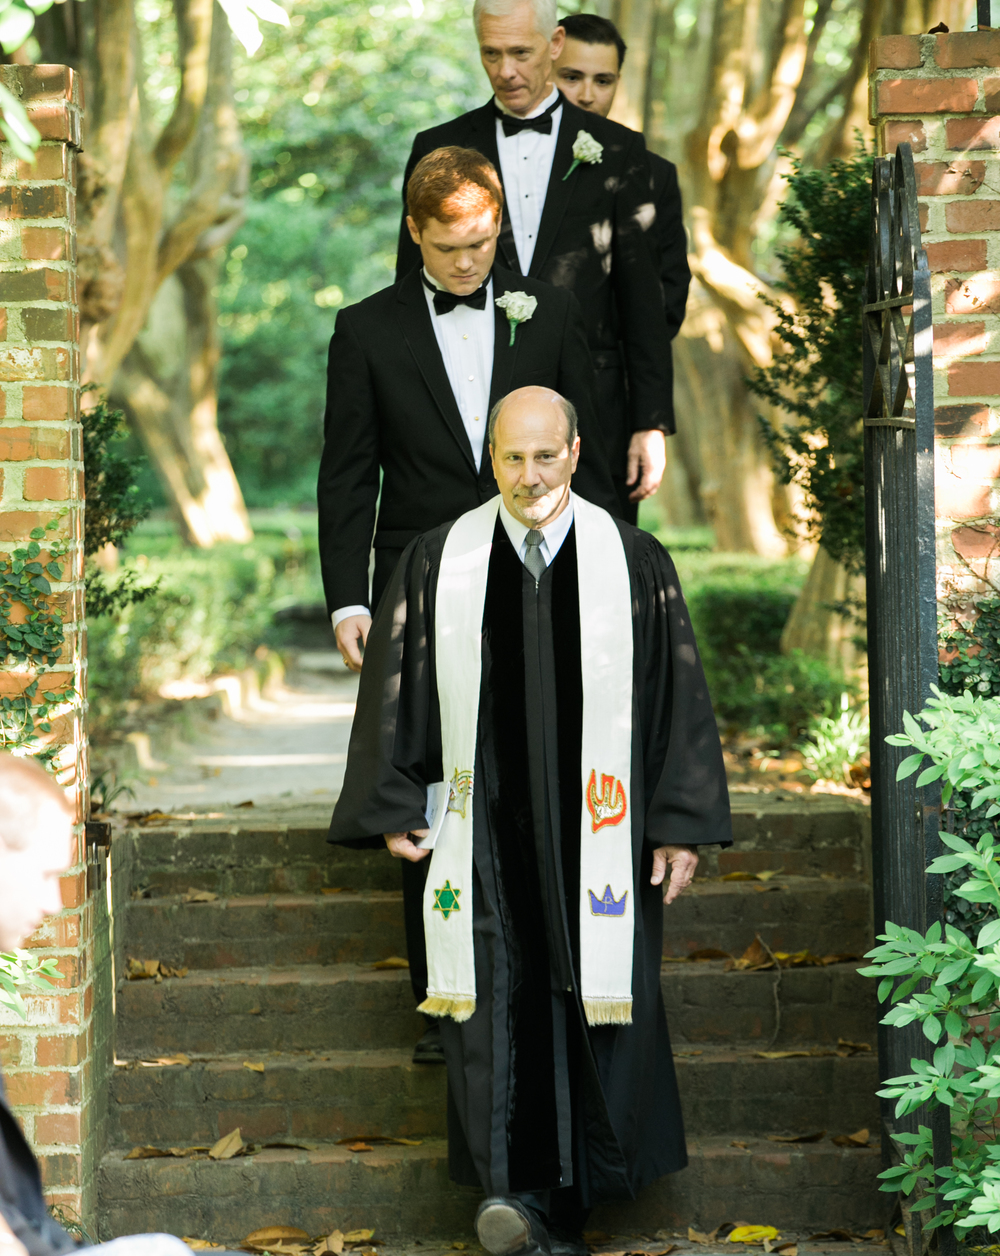 Lace House wedding ceremony in Columbia, SC